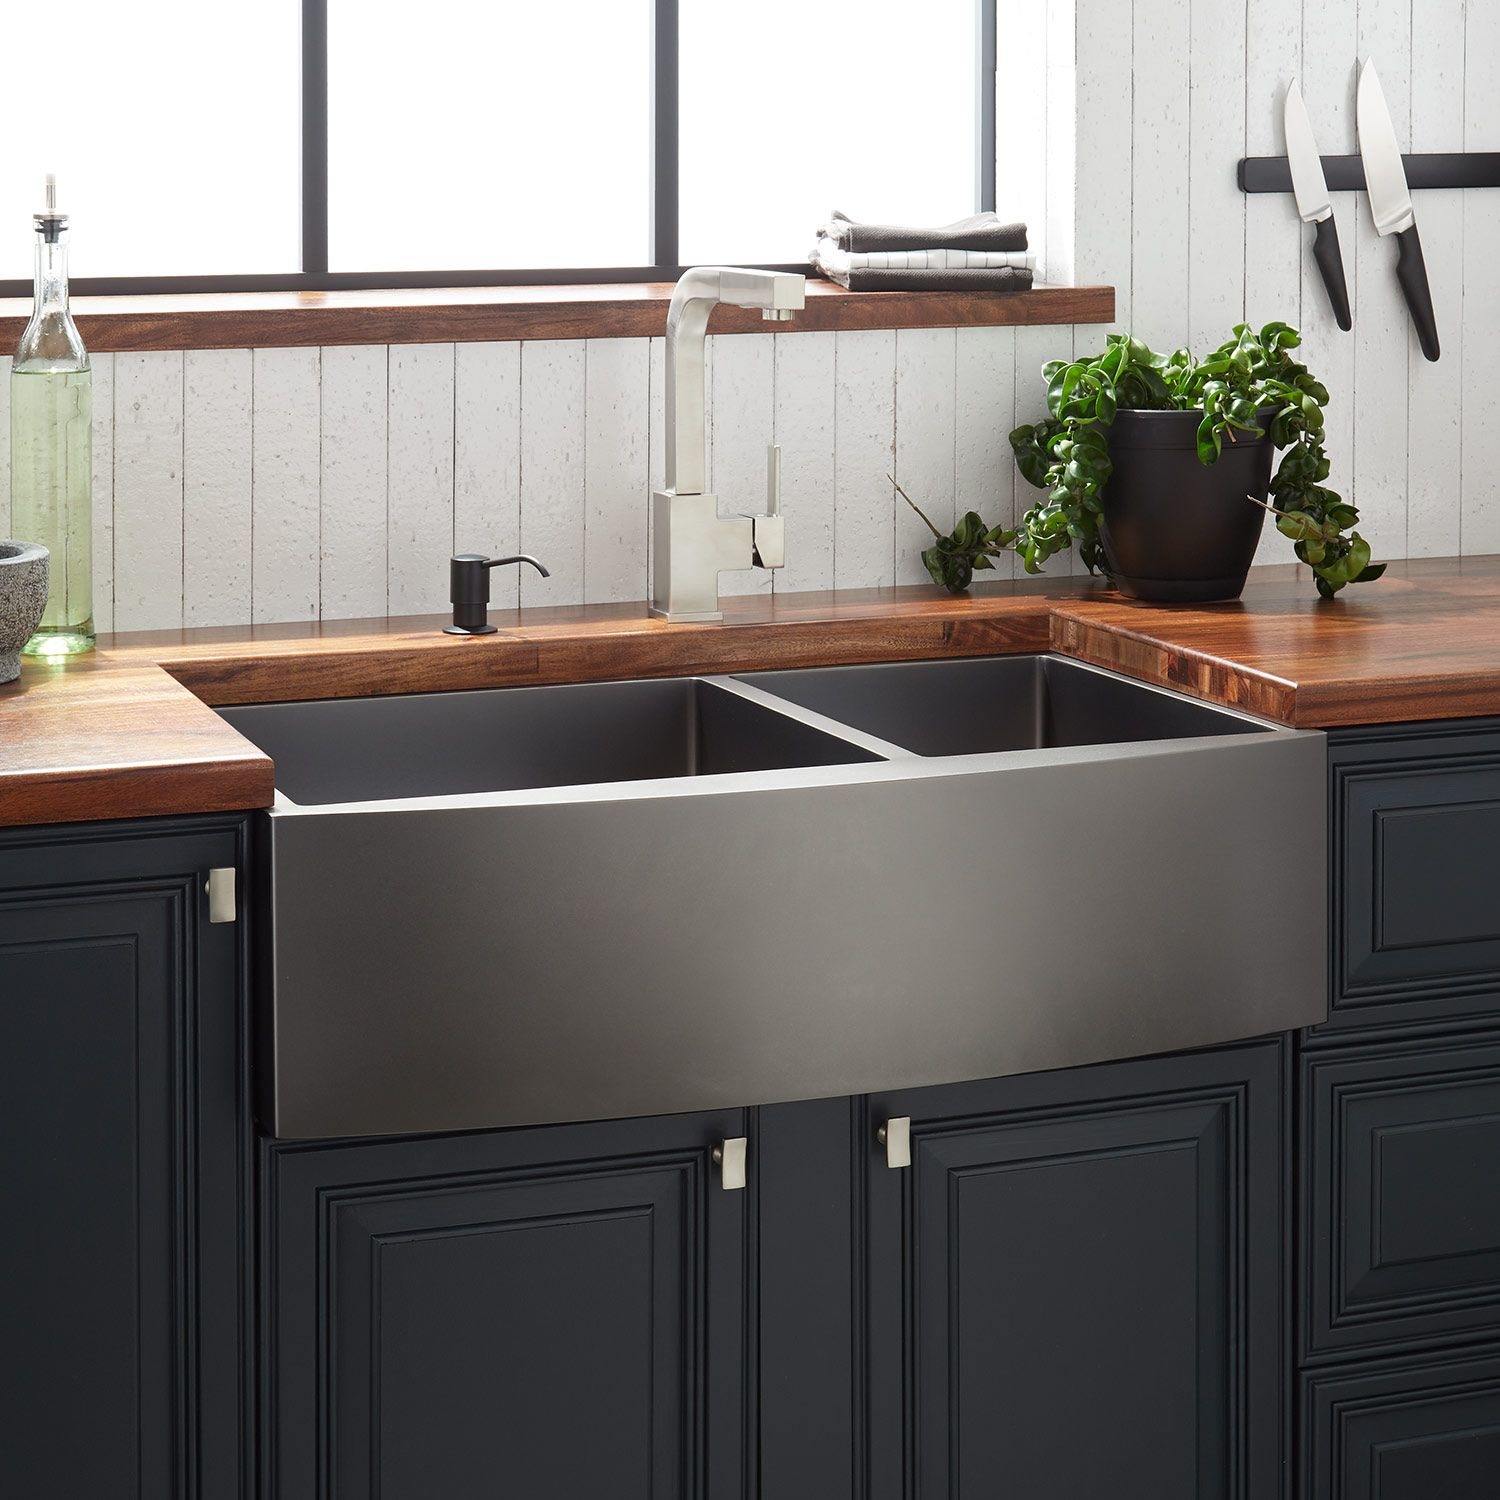 33 atlas 6040 offset doublebowl stainless steel